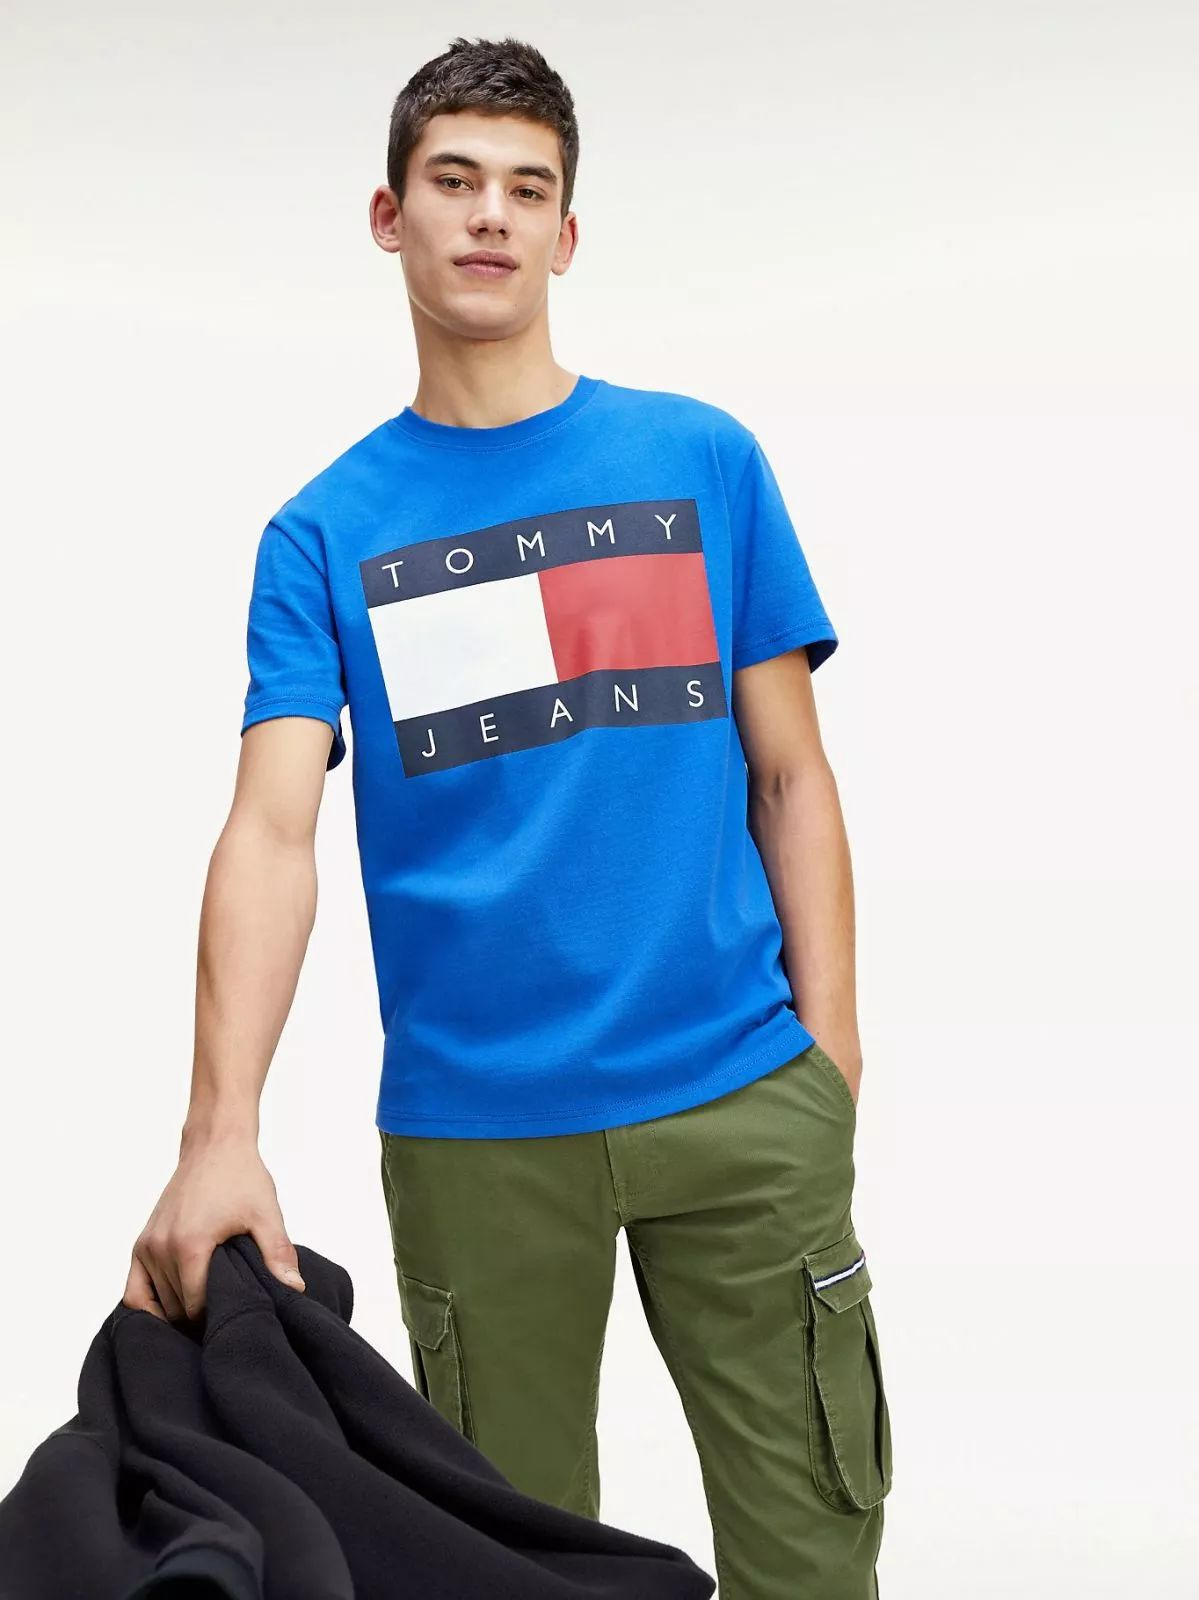 T-SHIRT and tank top men TOMMY jeans DM0DM07009 flag T-SHIRT CKB surf the WEB